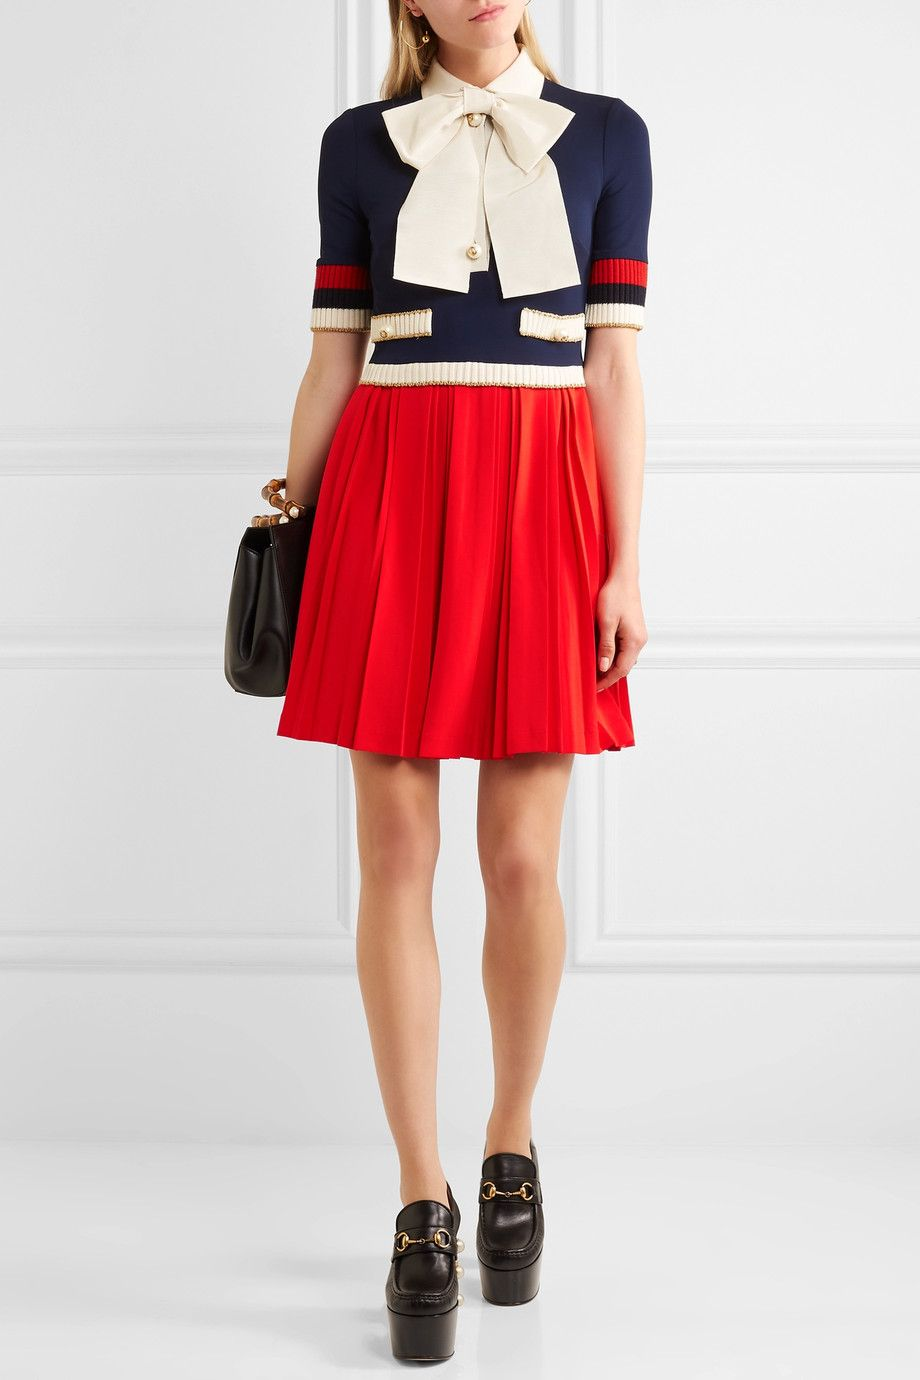 Gucci Bow Detailed Ribbed Knit Trimmed Pleated Stretch Crepe Mini Dress Net A Porter Com